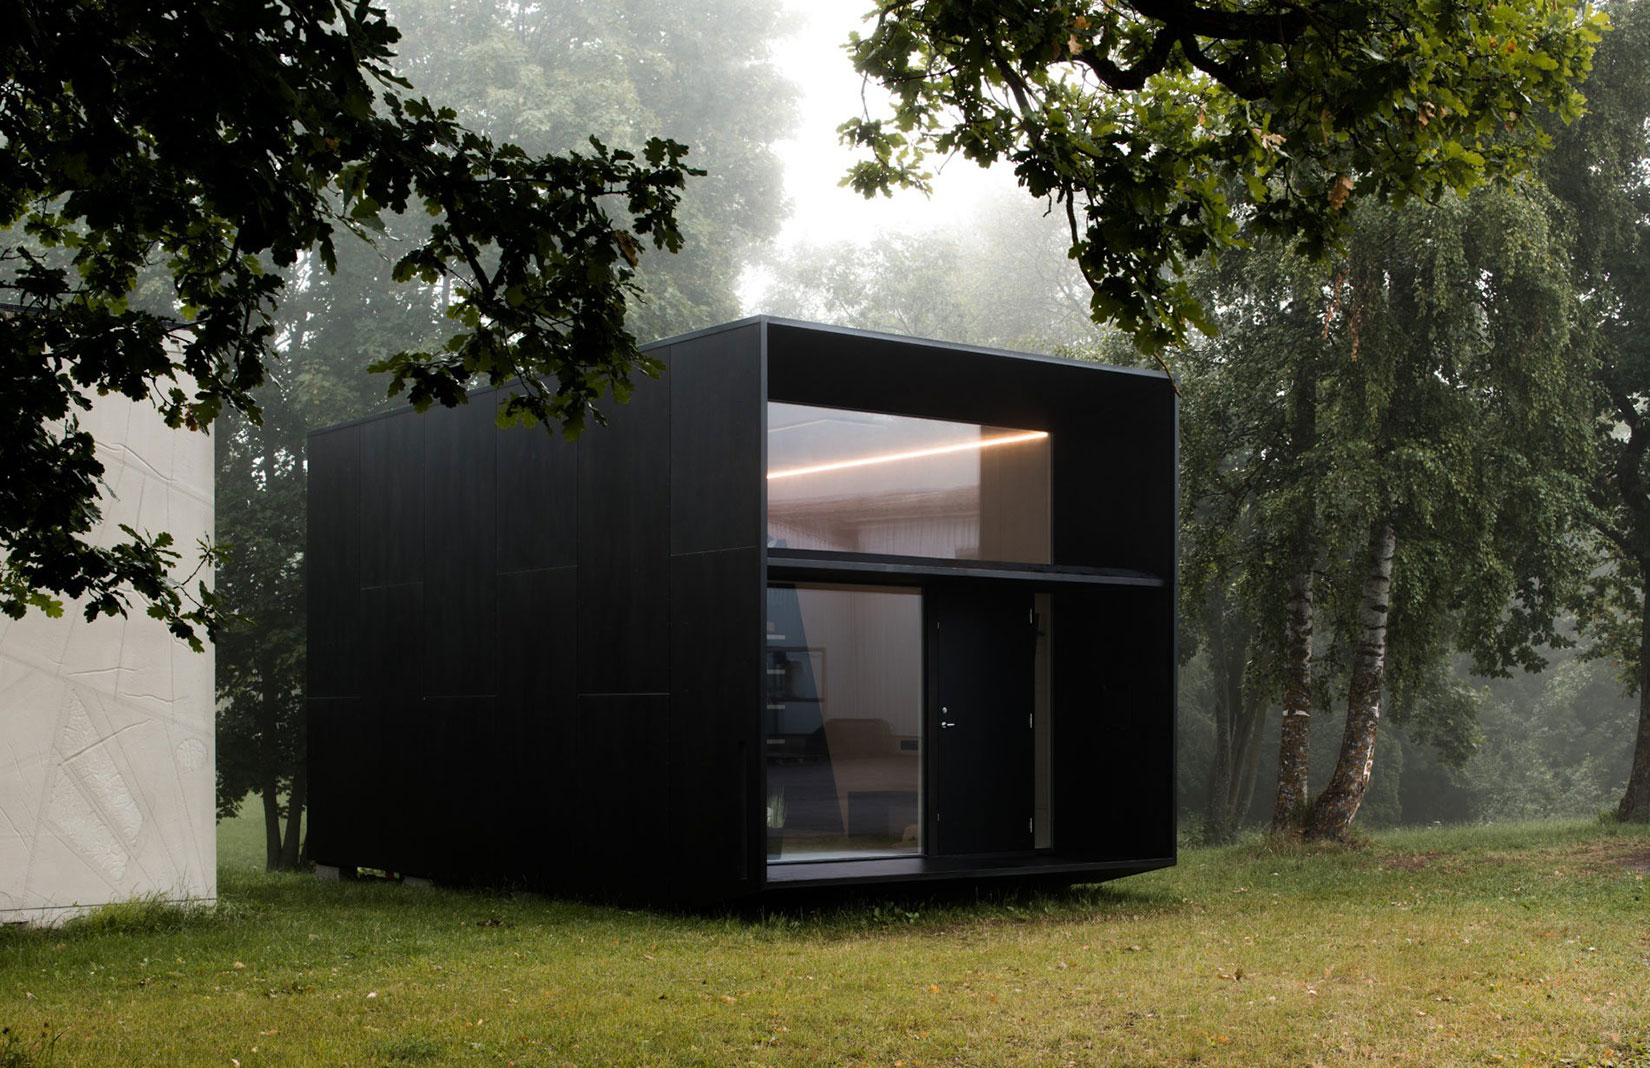 Kodasema's Nordic tiny homes are now available in the USA